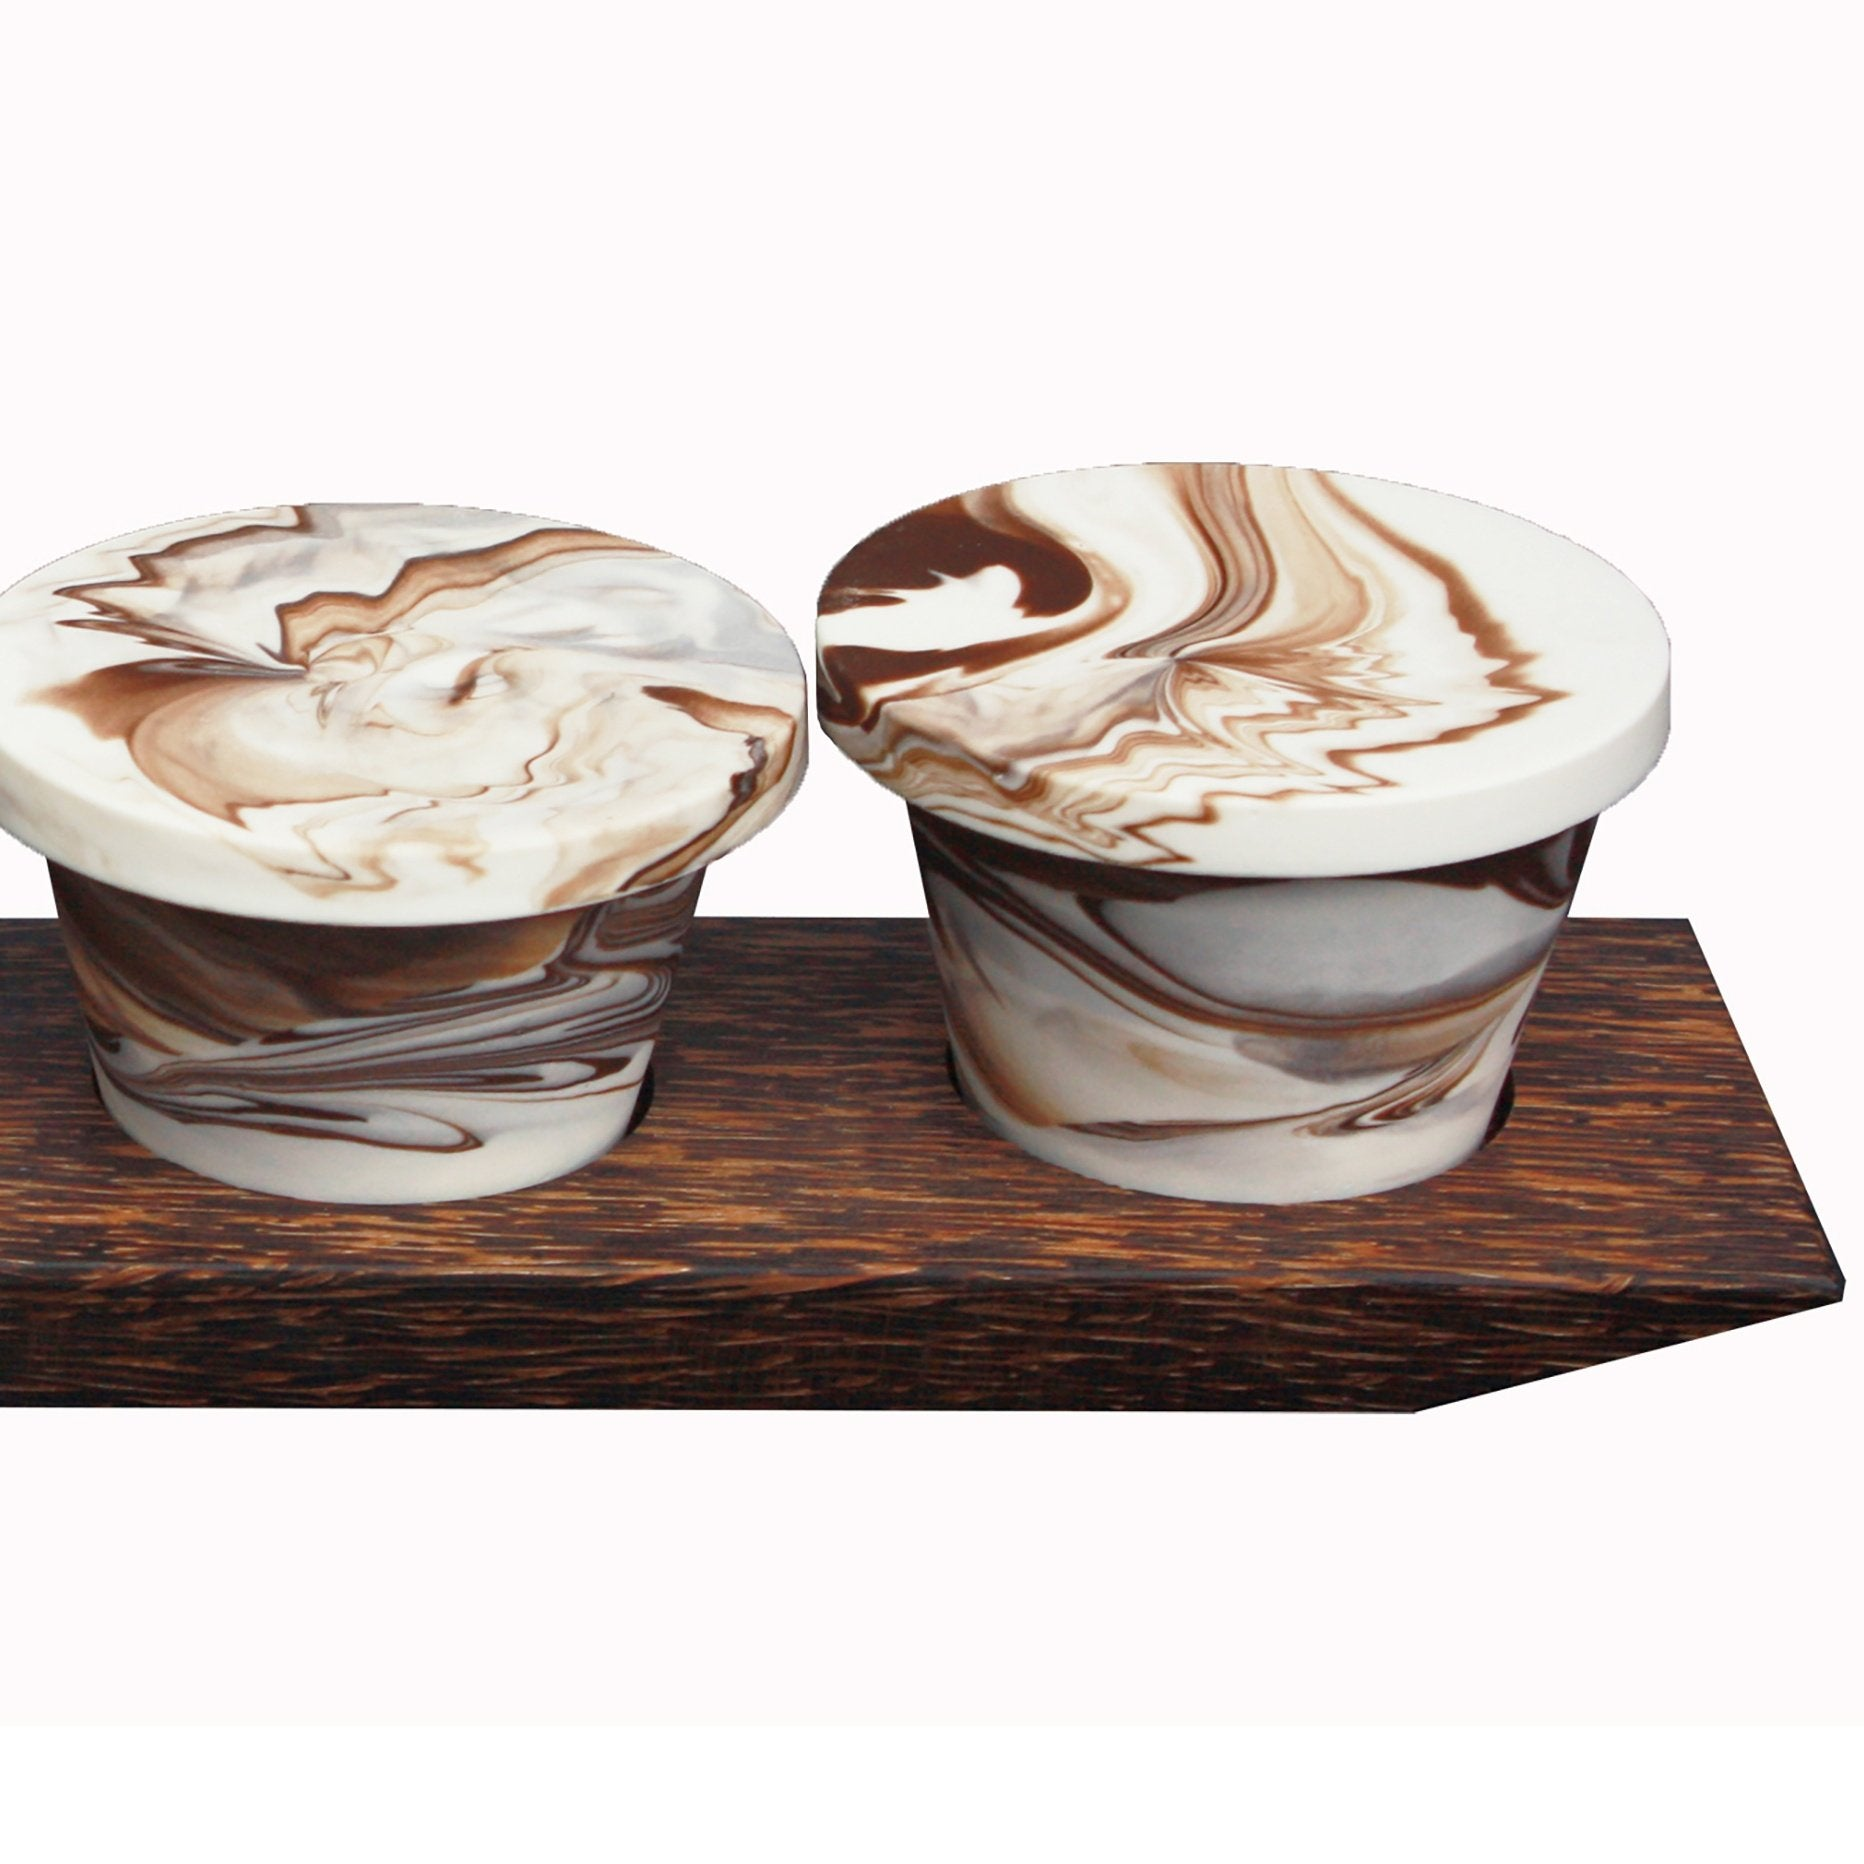 These handmade espresso cups are created with a unique combination of high-quality porcelain ceramic clays. Each set comes with four 4 oz. Cups with a lid/coaster and a beautiful serving tray made from Black Palmwood. Durable for everyday use. Microwave and dishwasher safe.